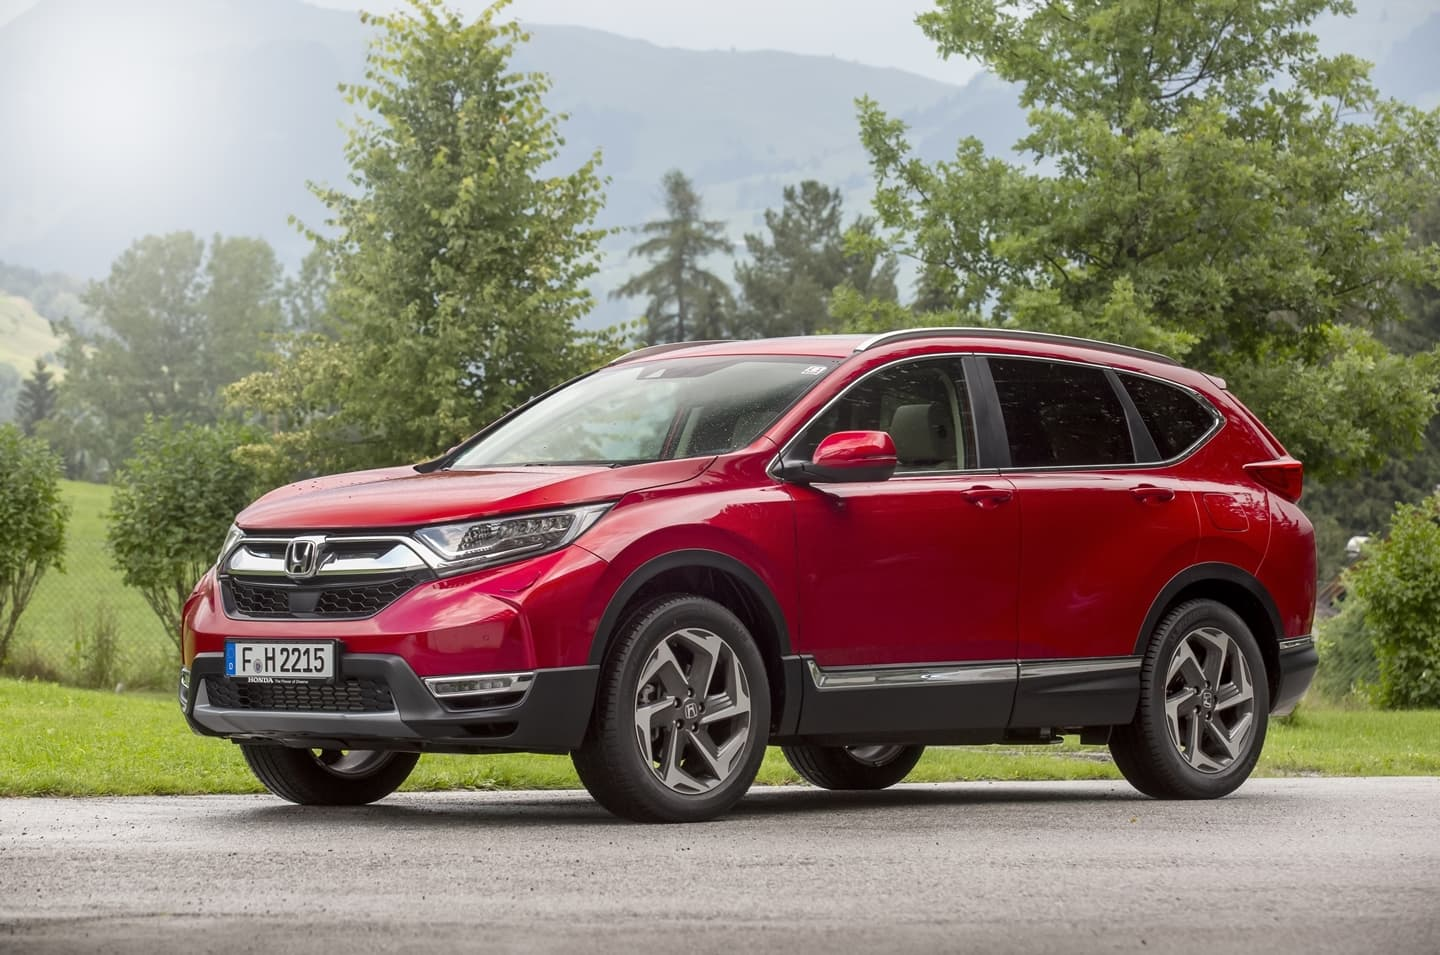 Probamos el honda cr v 2019 aspirante a l der entre los for Where is the honda cr v built